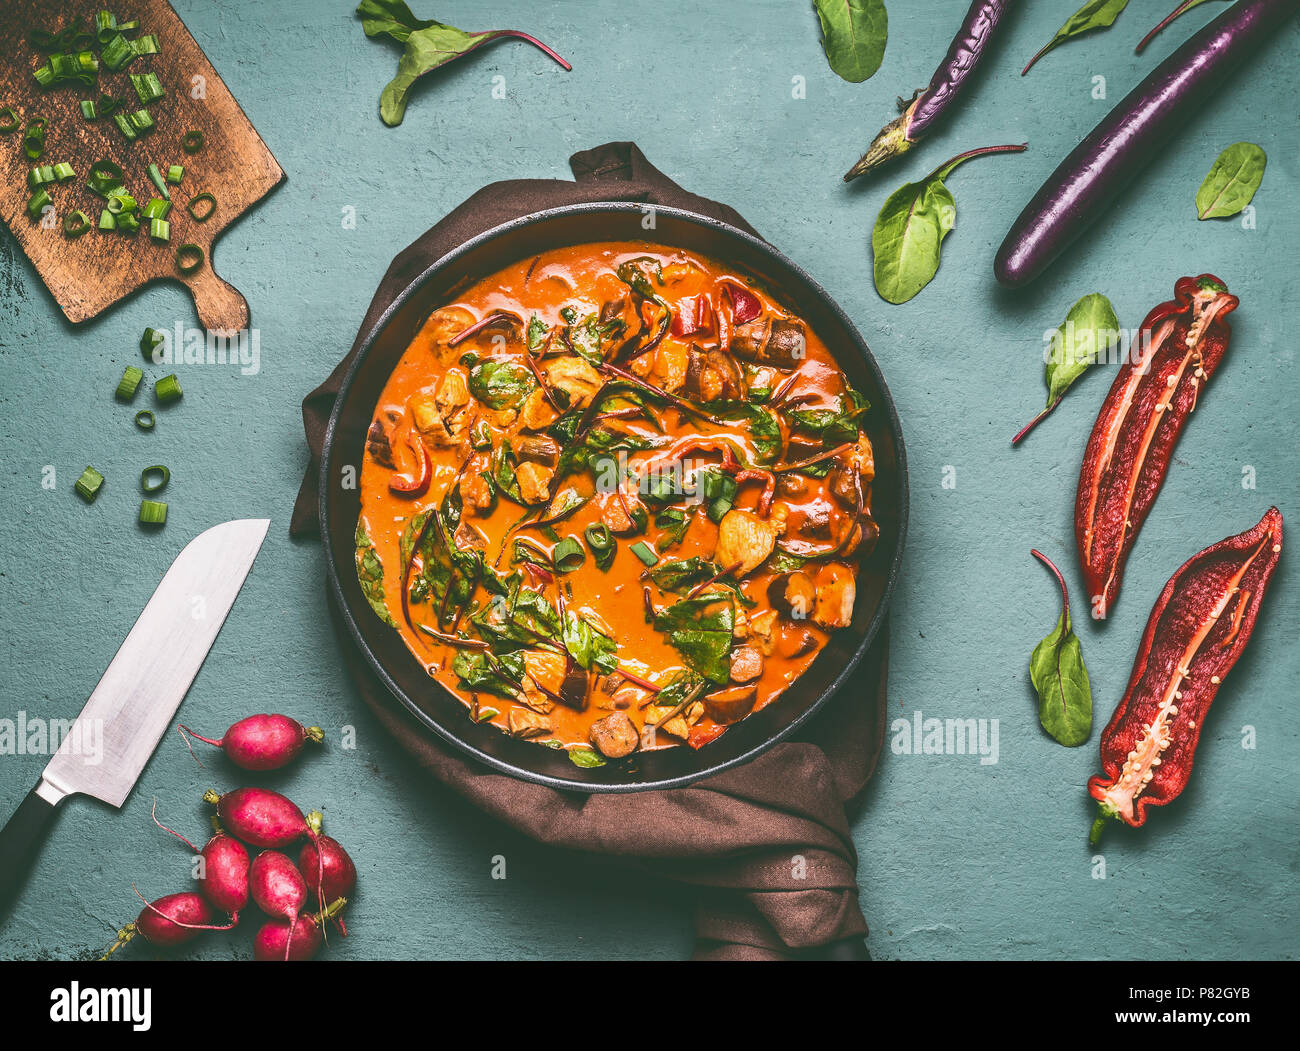 Vegetables chicken pan with curry sauce on kitchen table background with ingredients, top view, flat lay. Healthy dieting food and eating concept - Stock Image